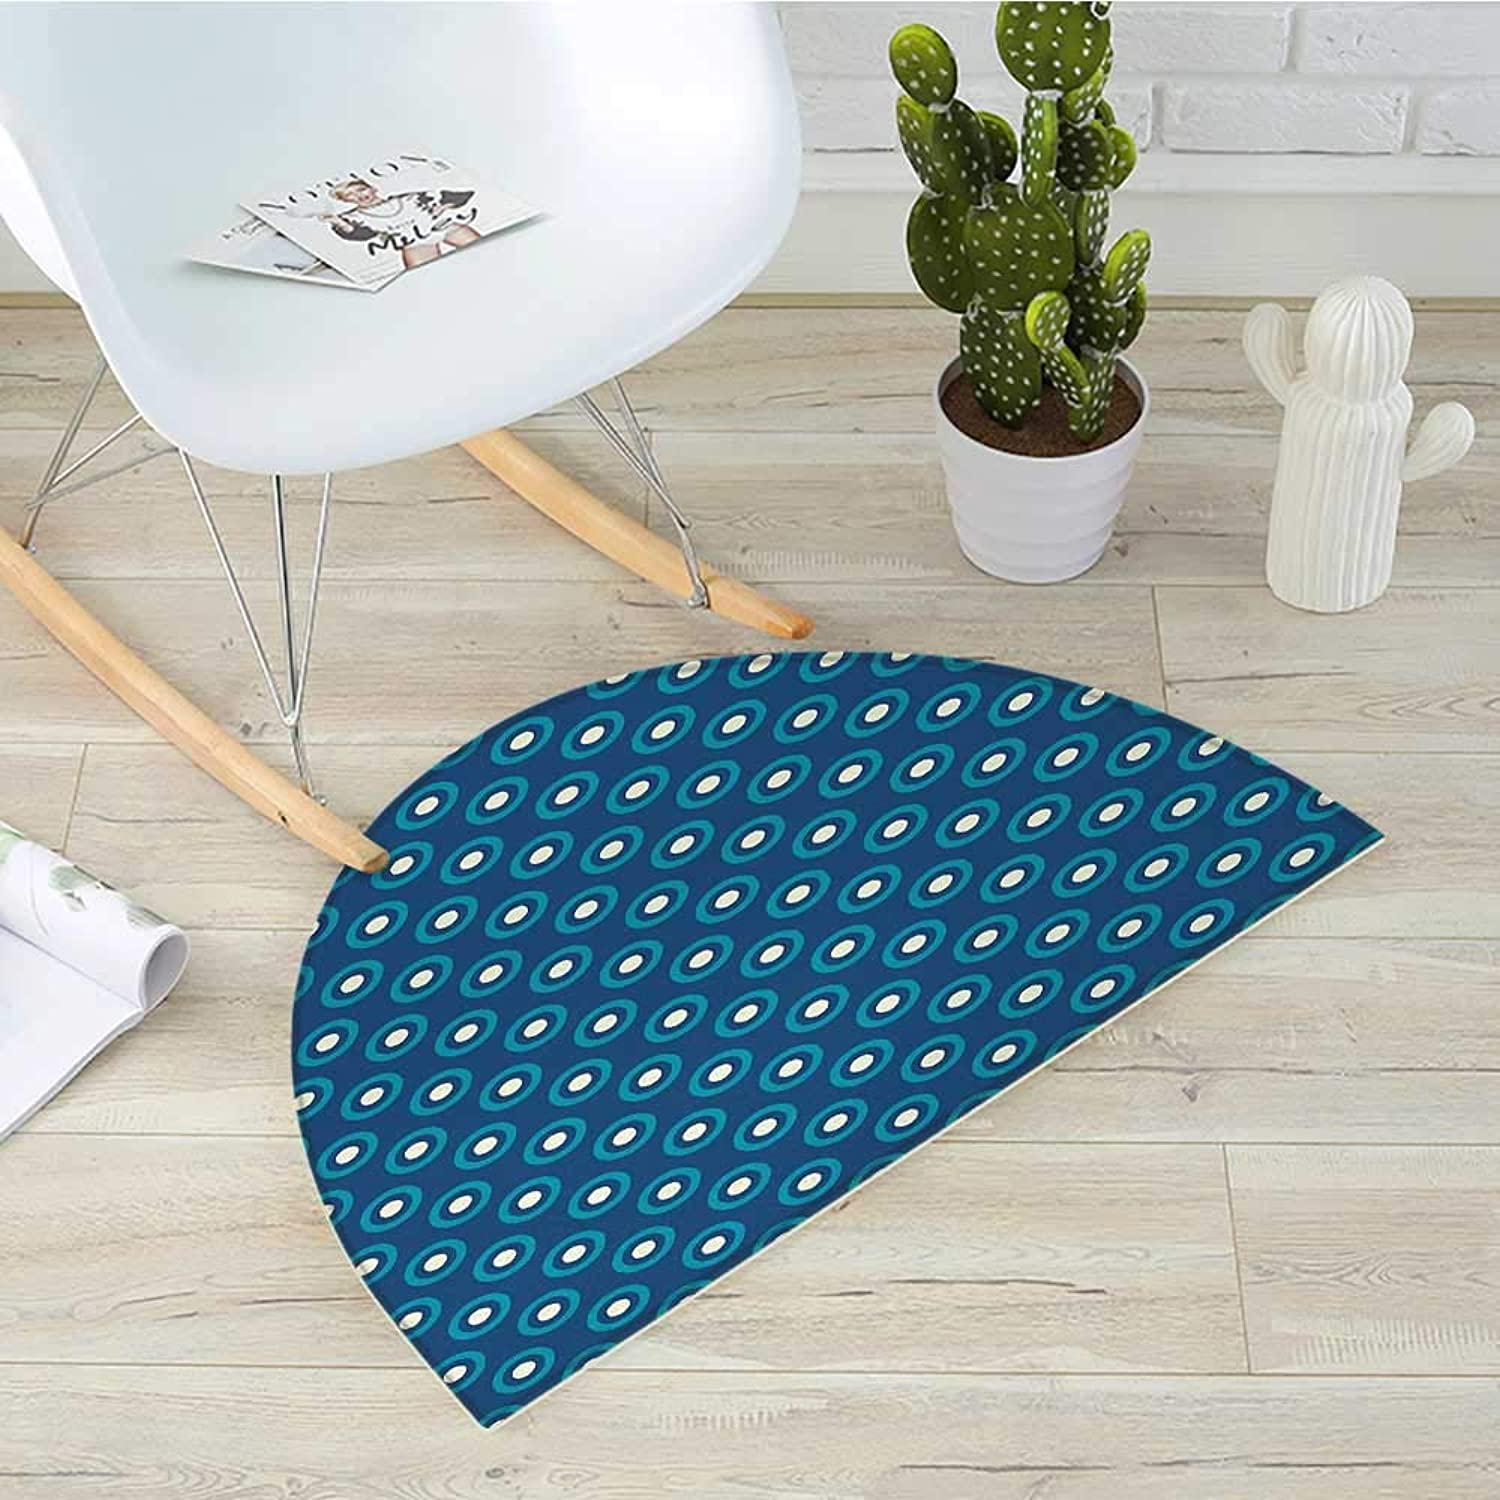 Navy and White Half Round Door mats Circles with White Polka Dots Ancestral Folk Evil Eye Style Tile Bathroom Mat H 39.3  xD 59  Dark bluee Teal White